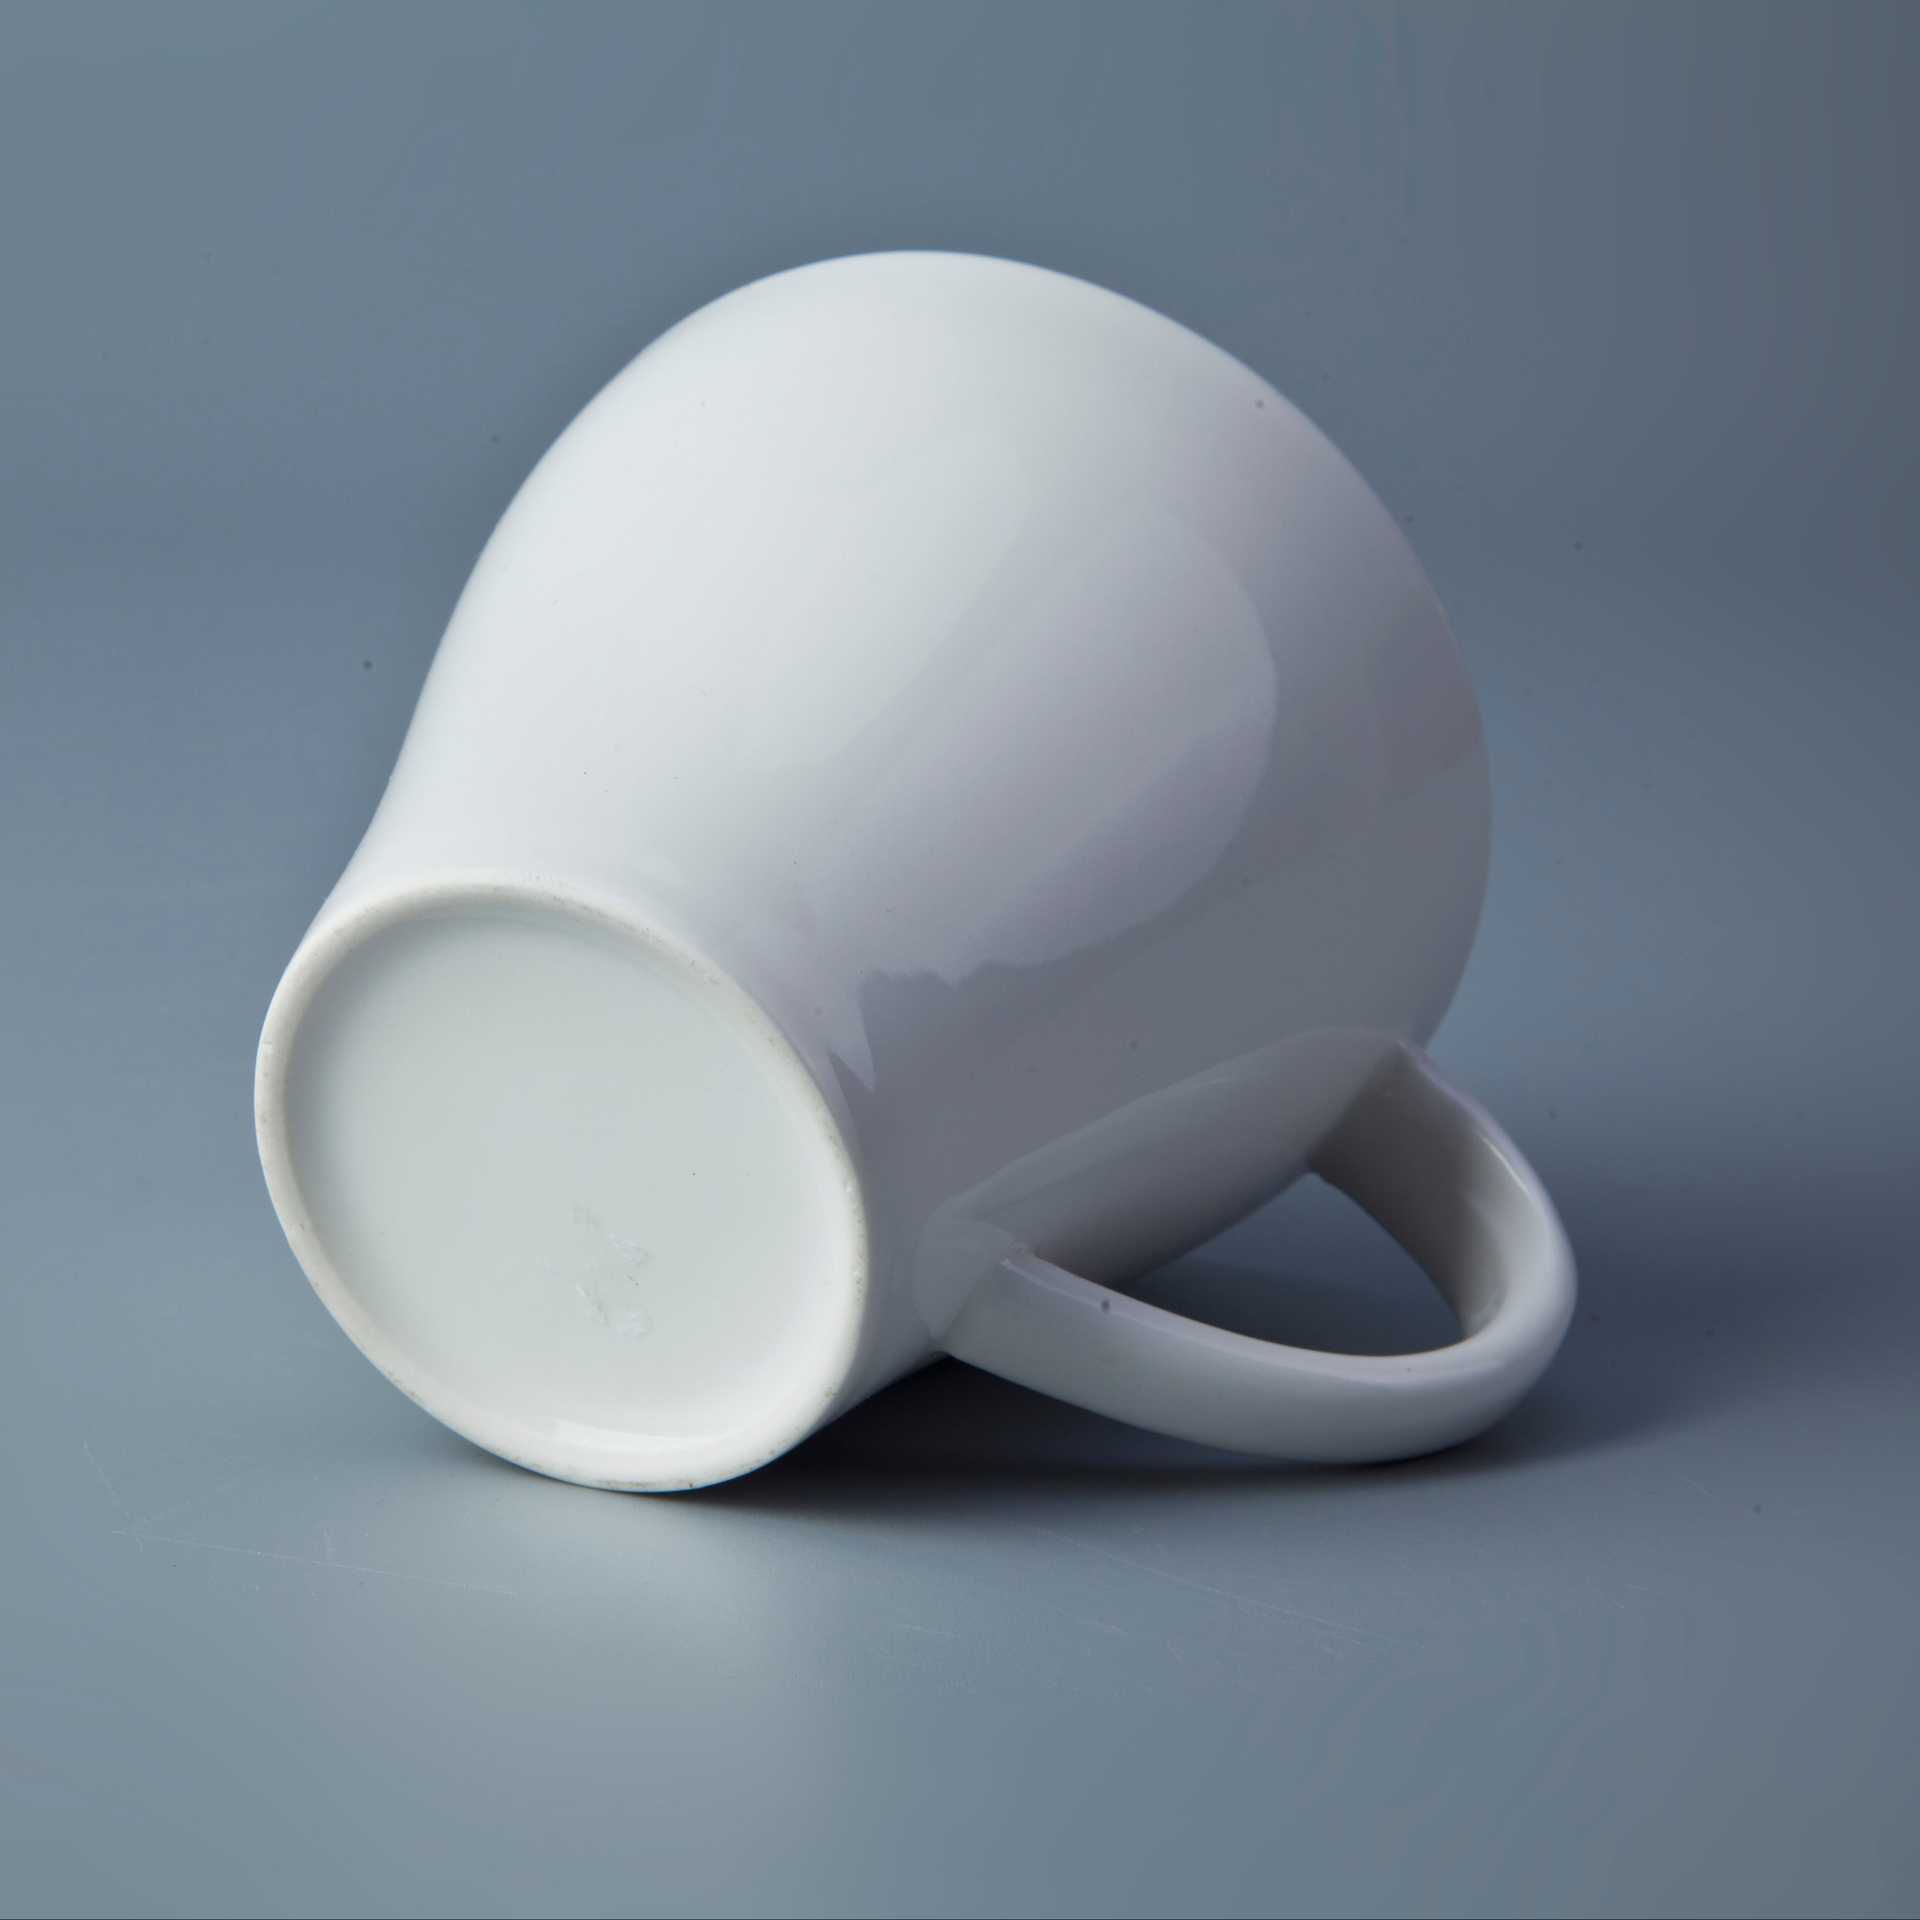 unique design hotel ware coffee cup and saucer coffee cup set